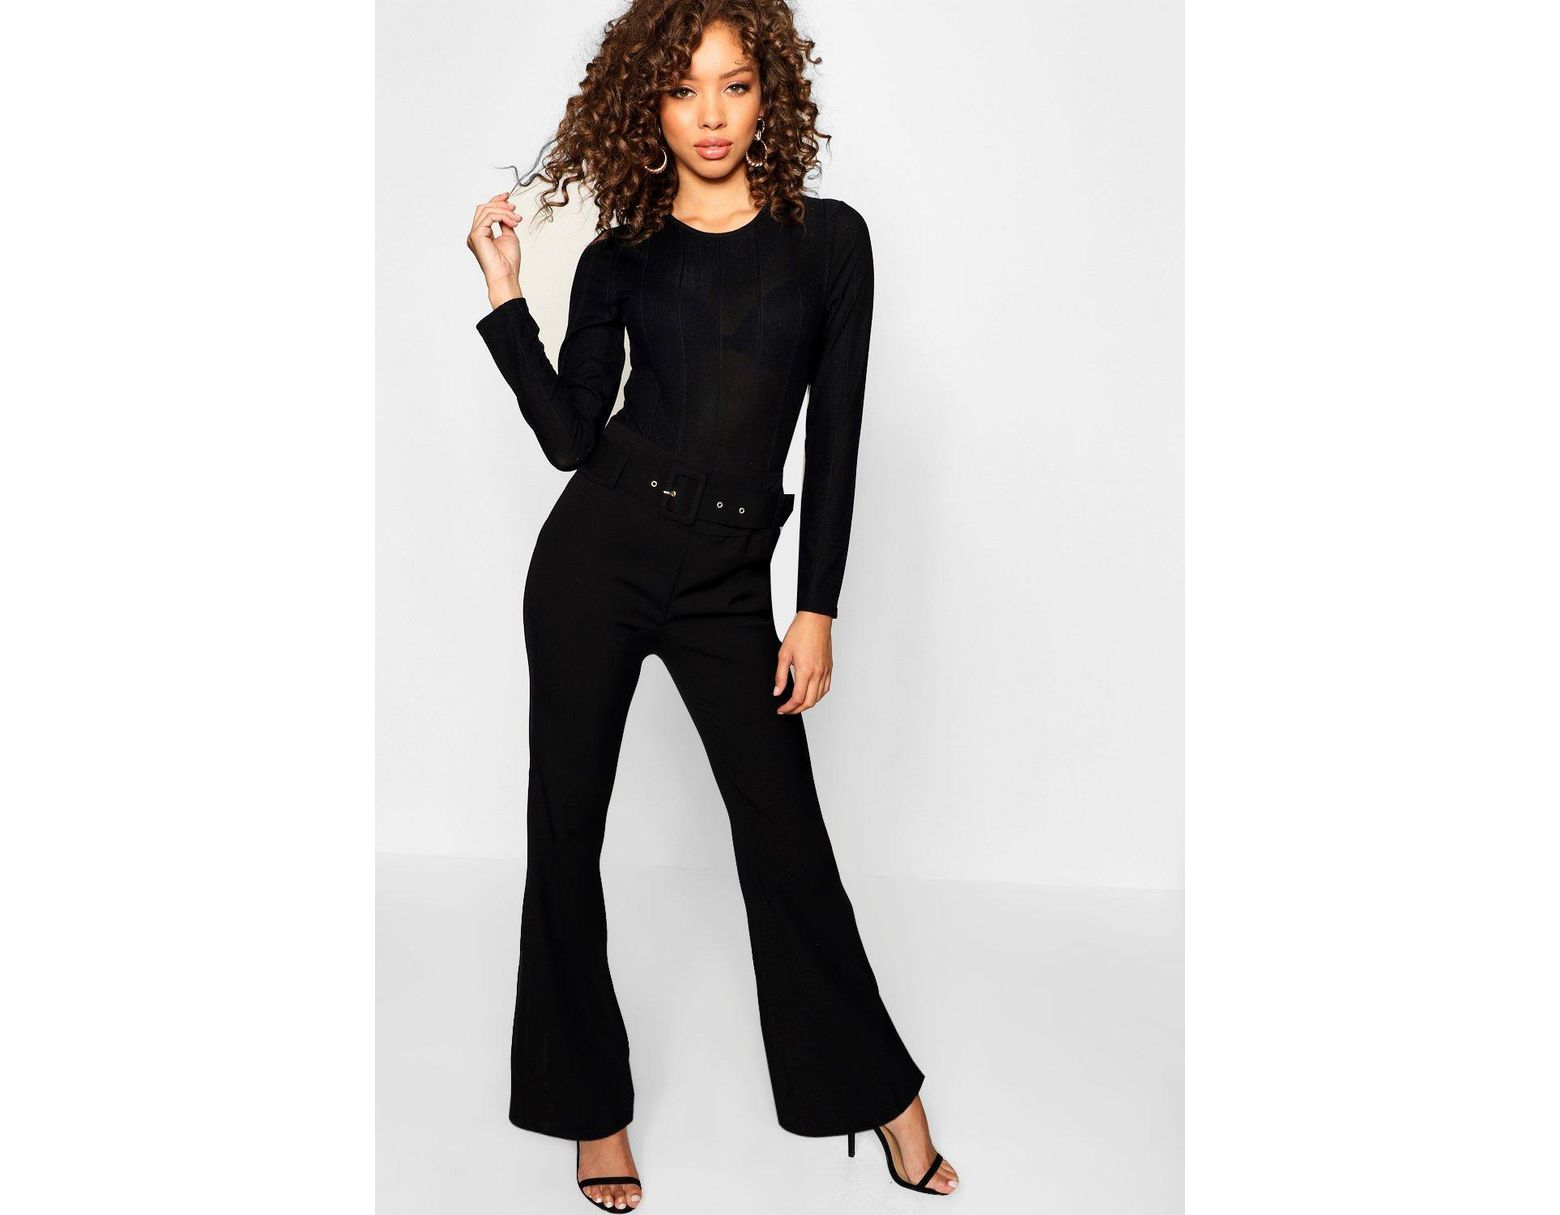 db5bd6444da7 Lyst - Boohoo Kick Flare Wide Leg Pants in Black